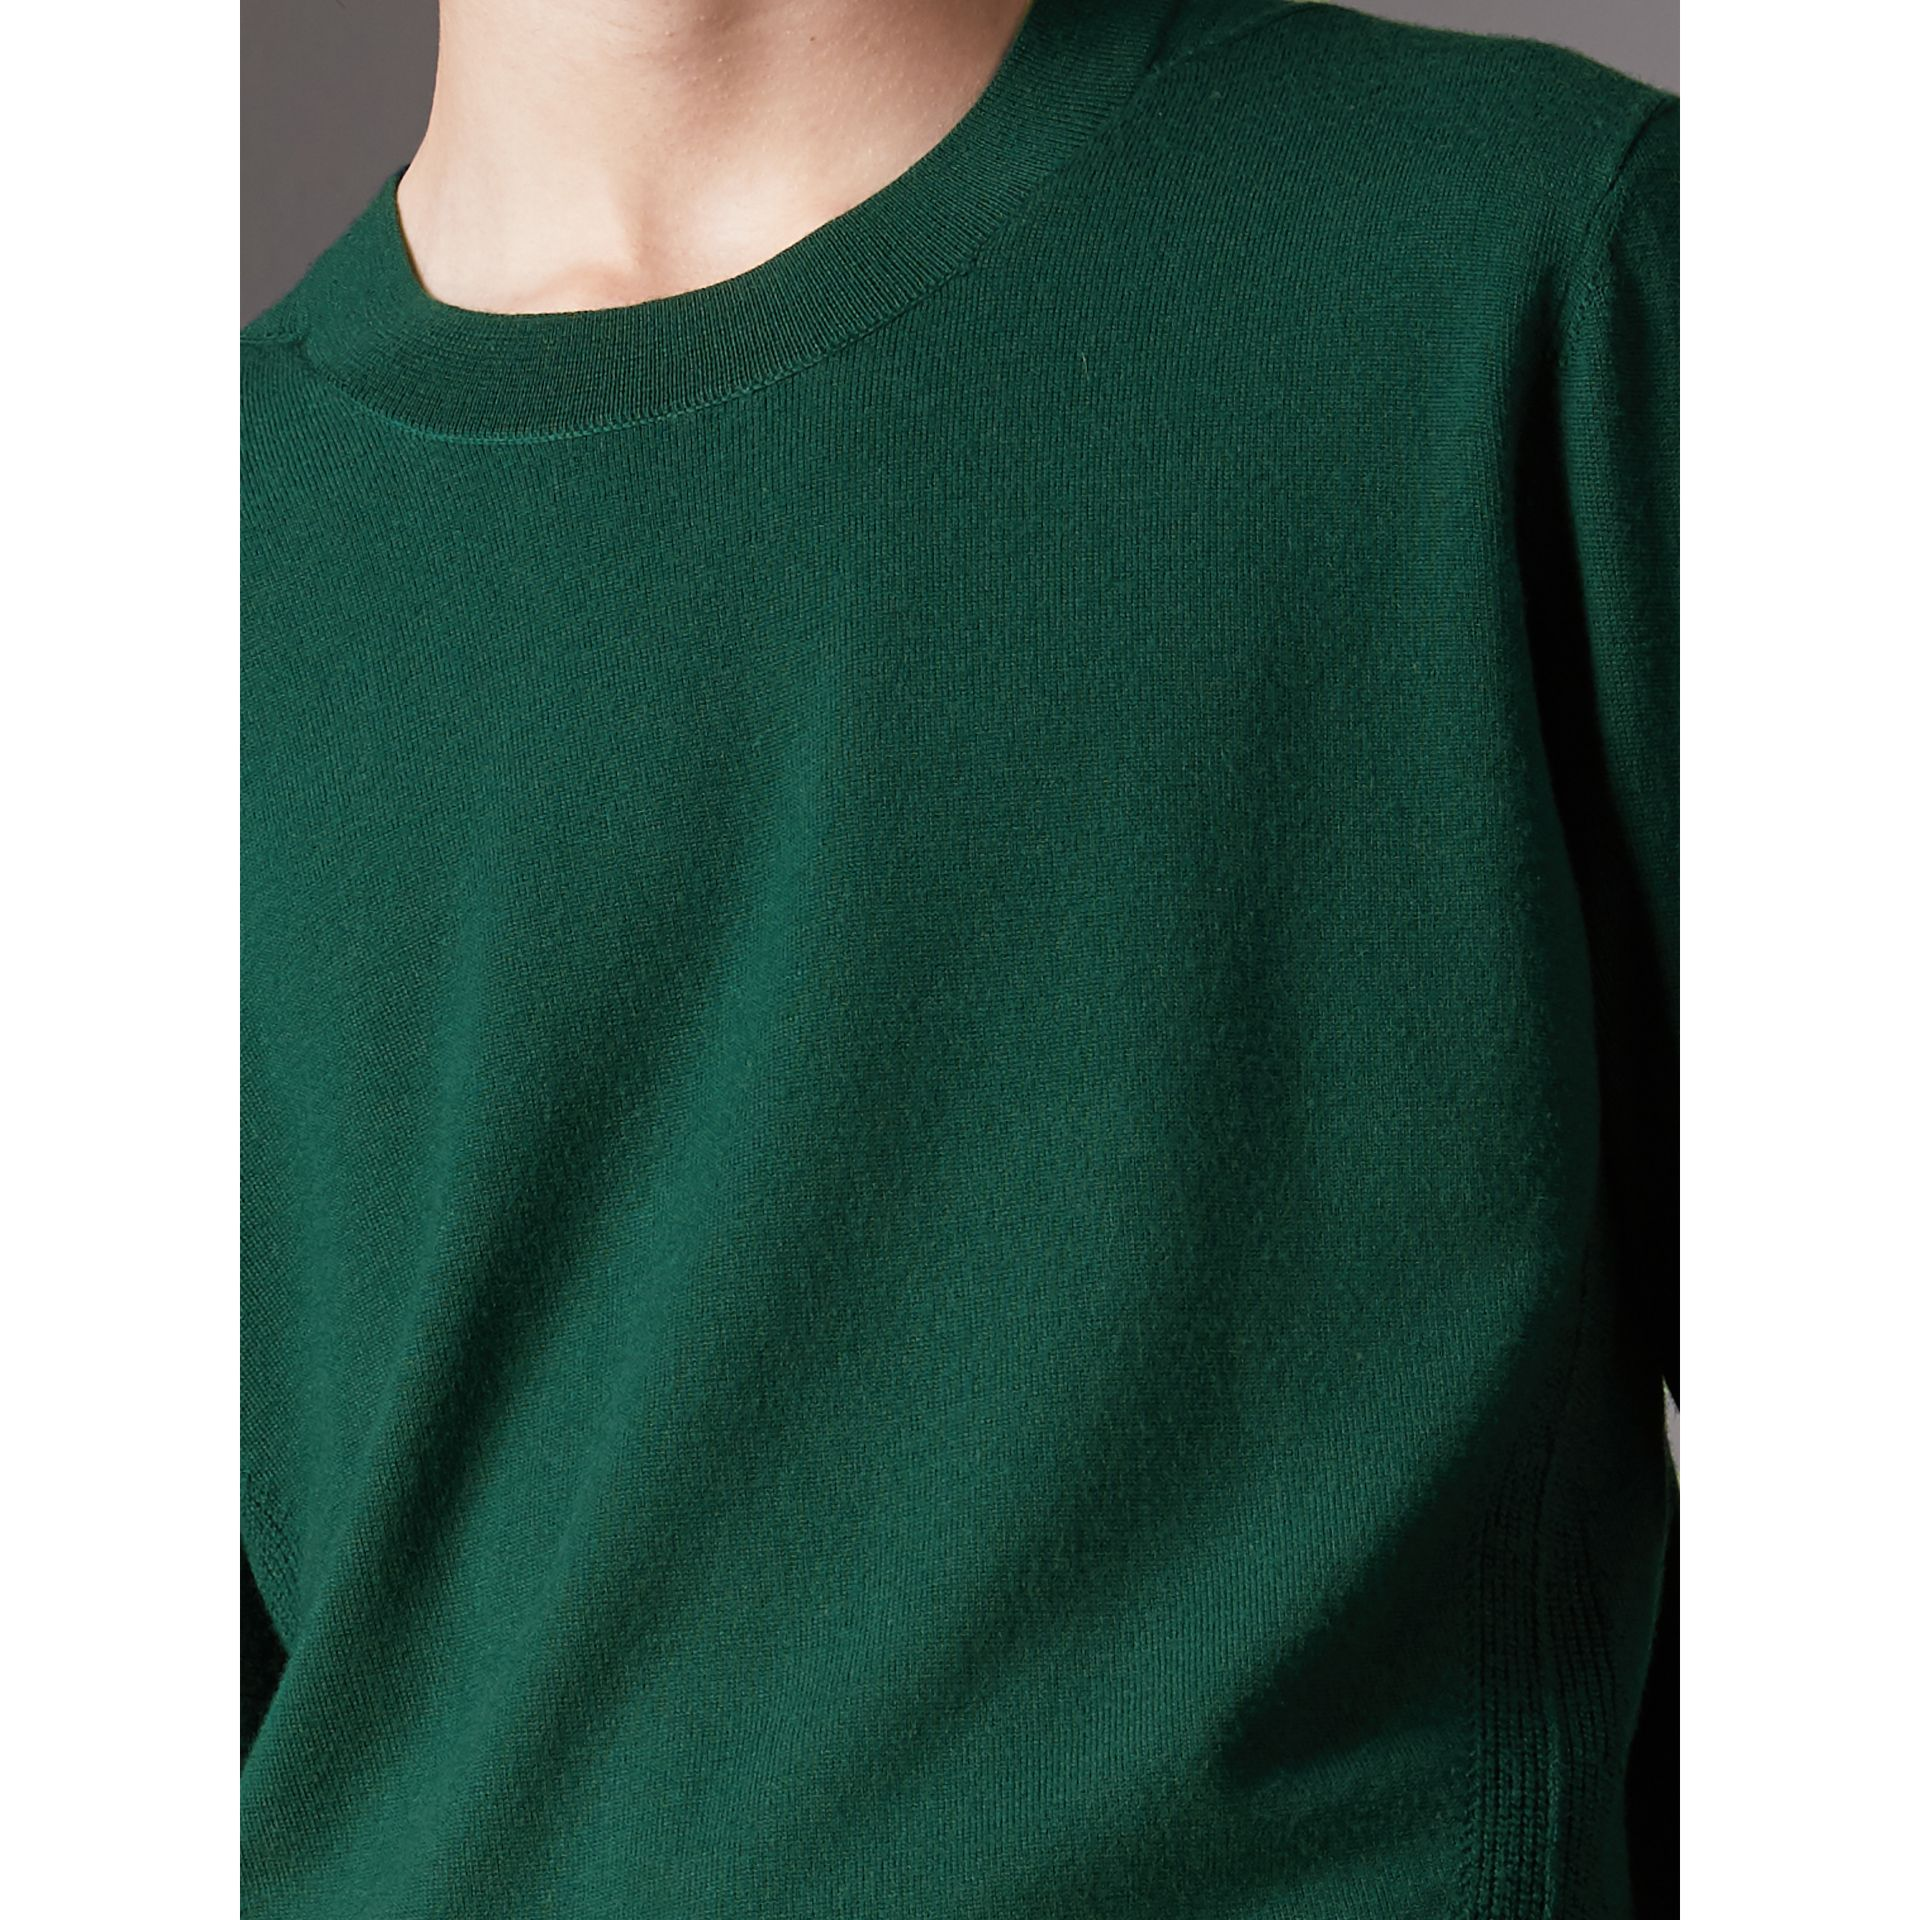 Check Detail Merino Wool Sweater in Dark Teal - Men | Burberry Singapore - gallery image 1